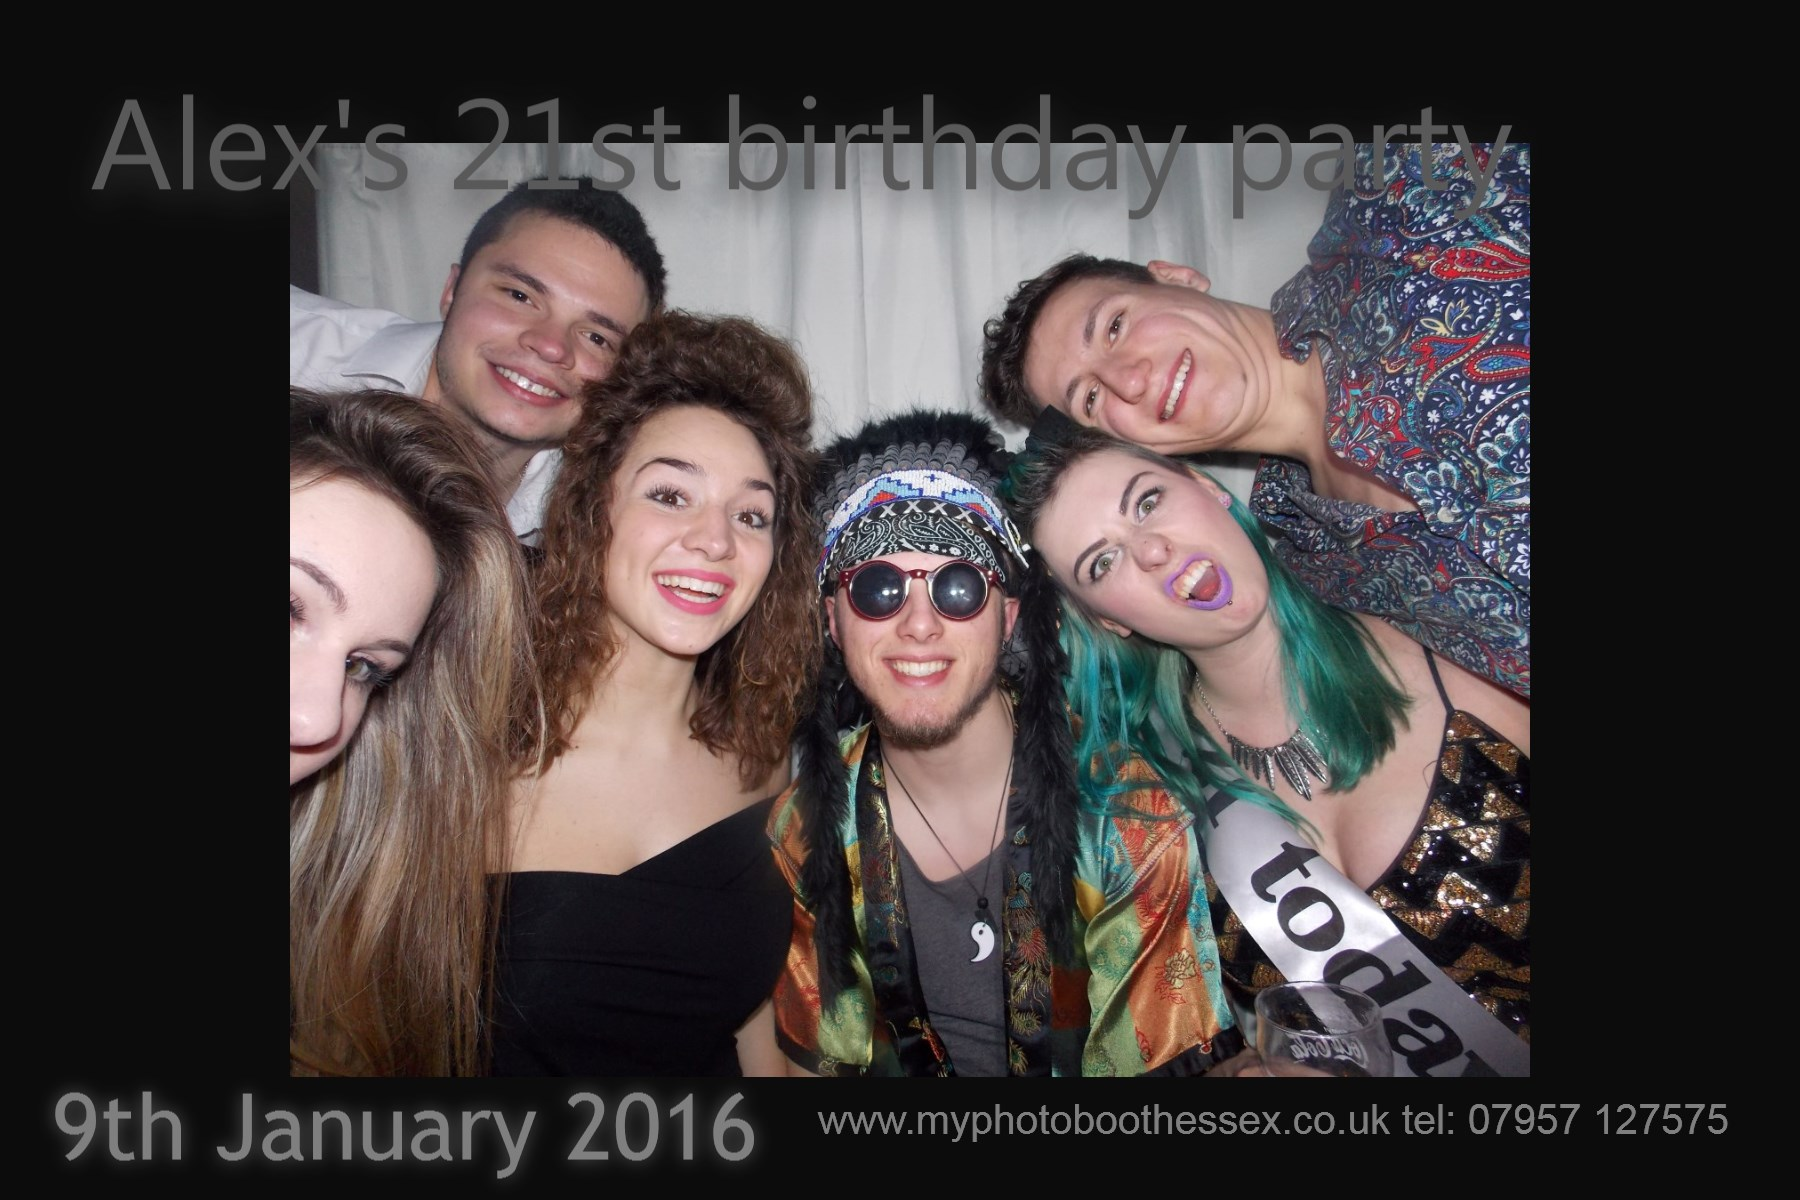 photobooth for 21st birthday party